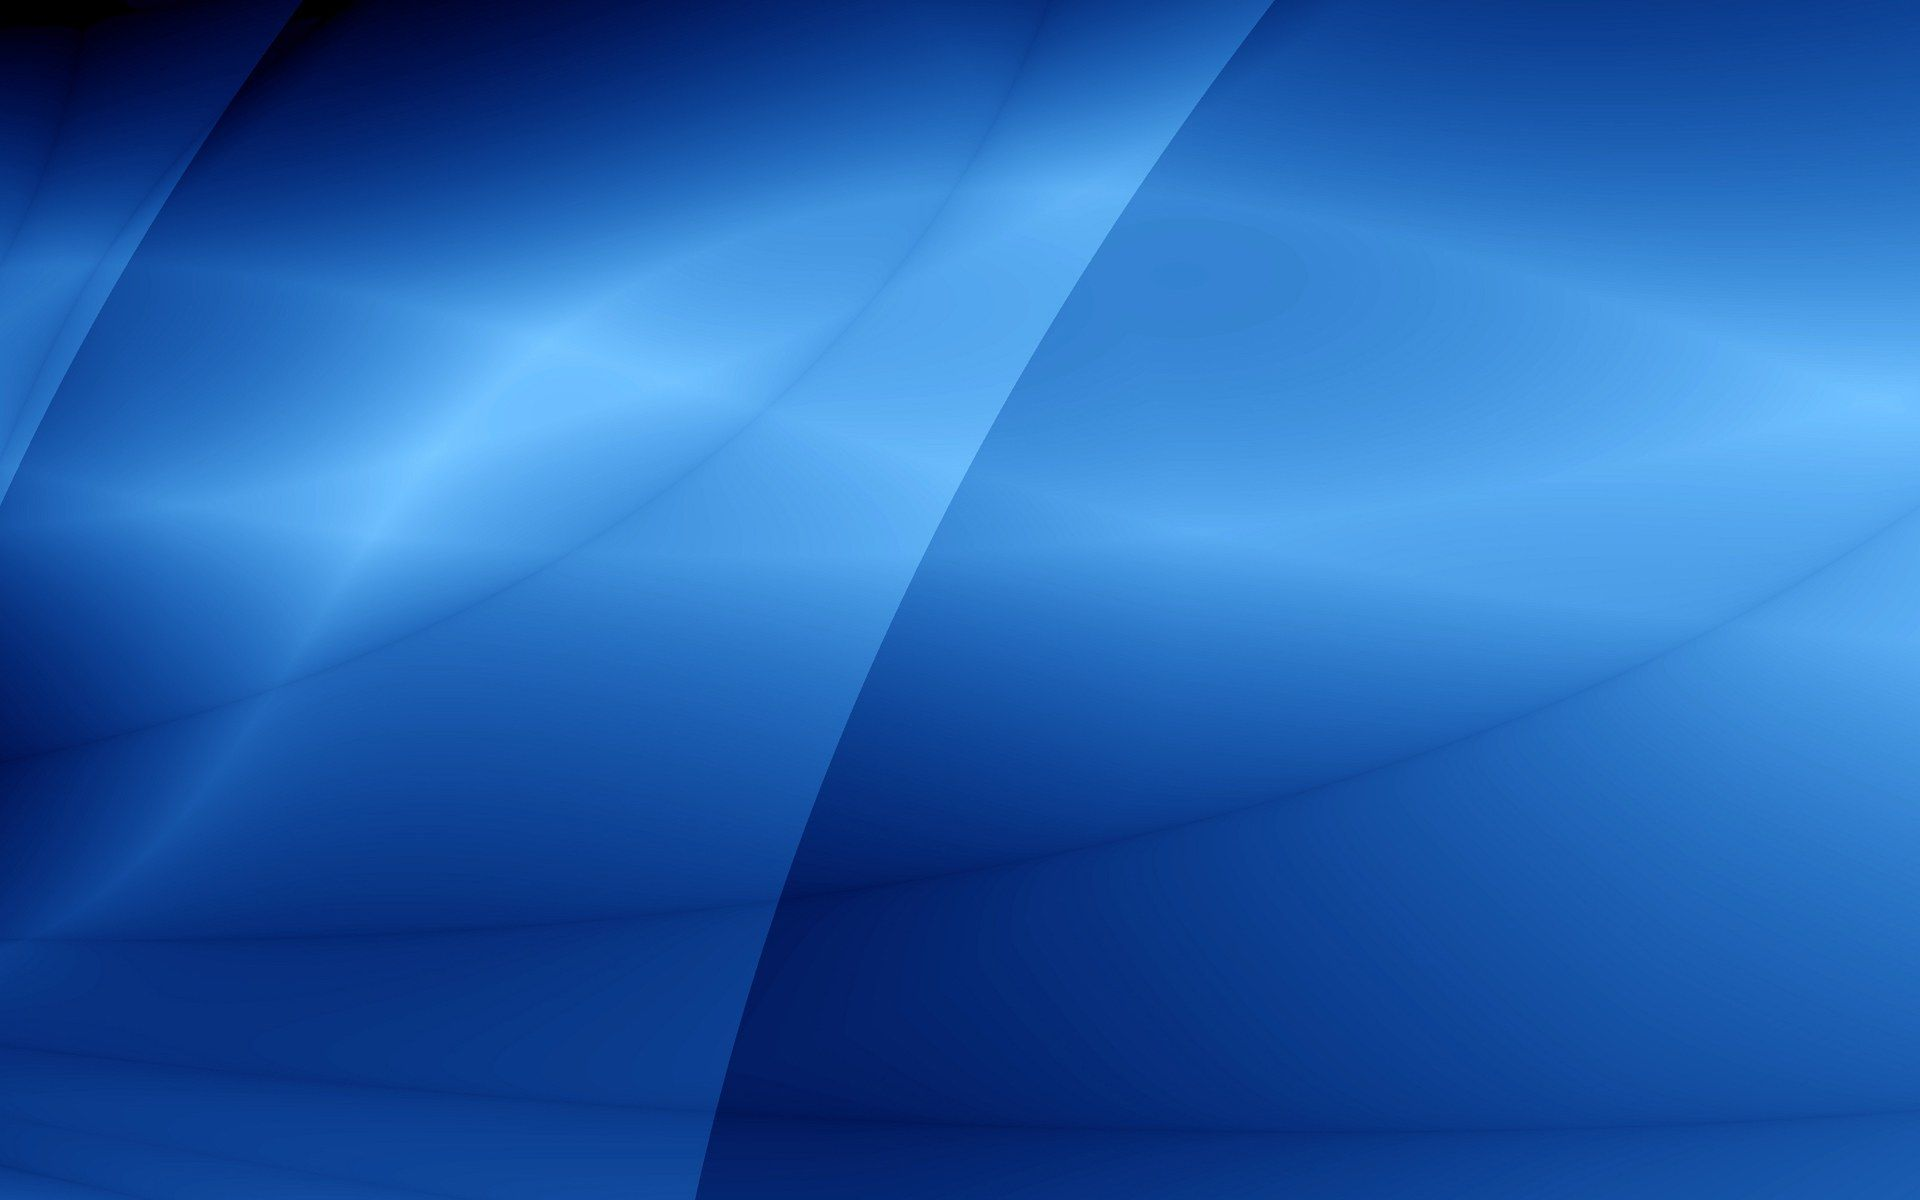 Hd Abstract Blue Background: Blue Abstract Background 2042 Hd Wallpapers In Abstract